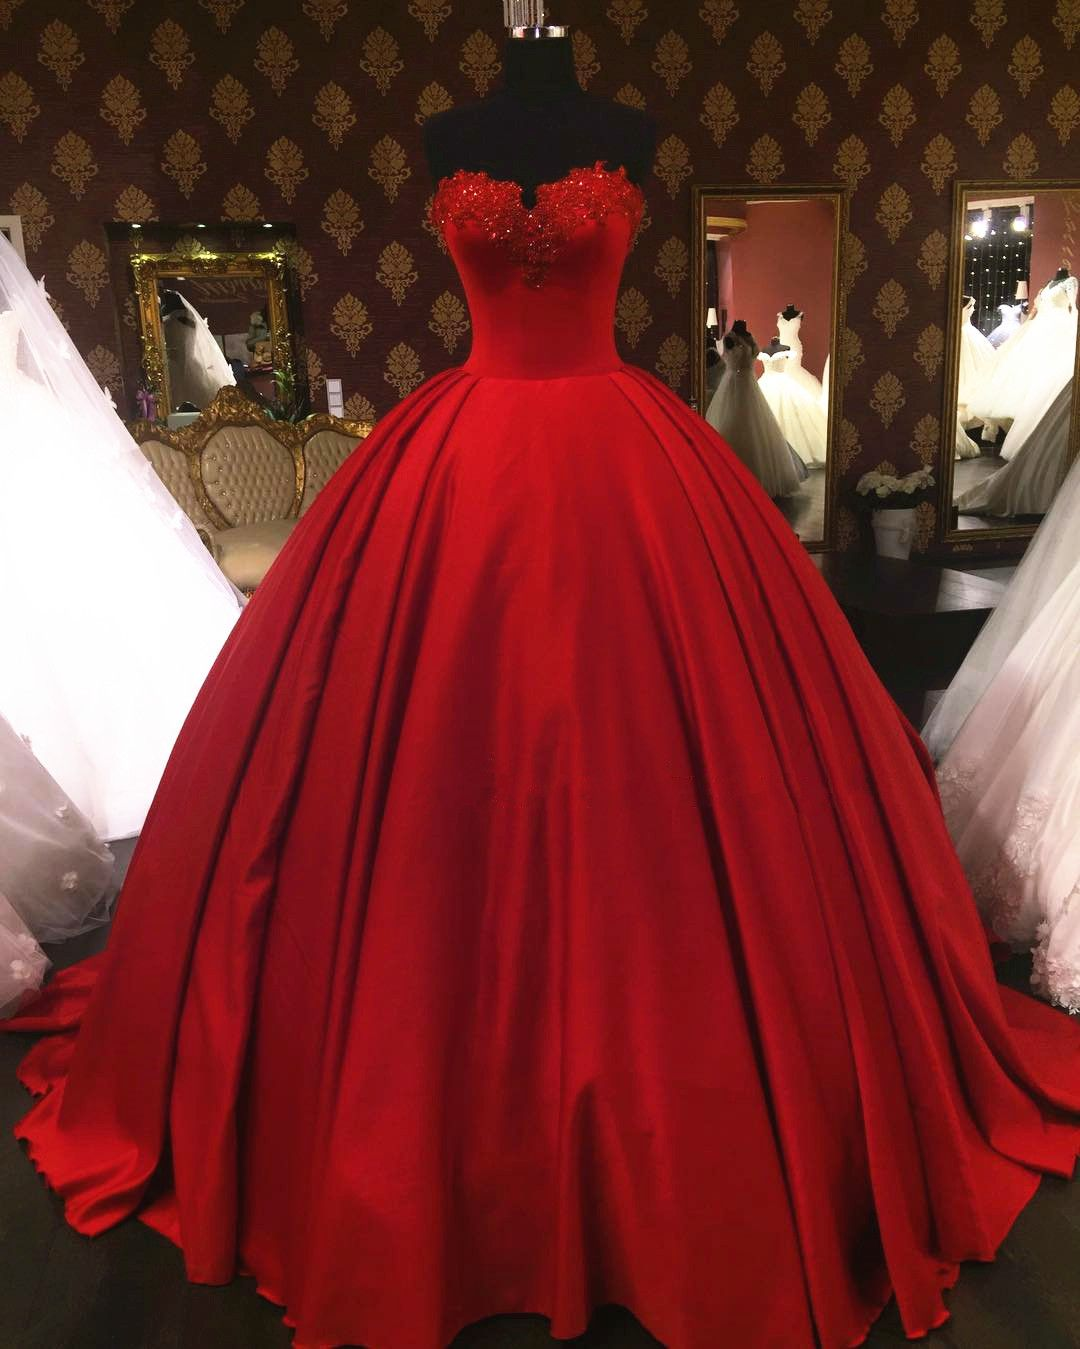 Lovely Sweetheart Red Wedding Dresses Ball Gowns Vintage Satin Dress Y 2017